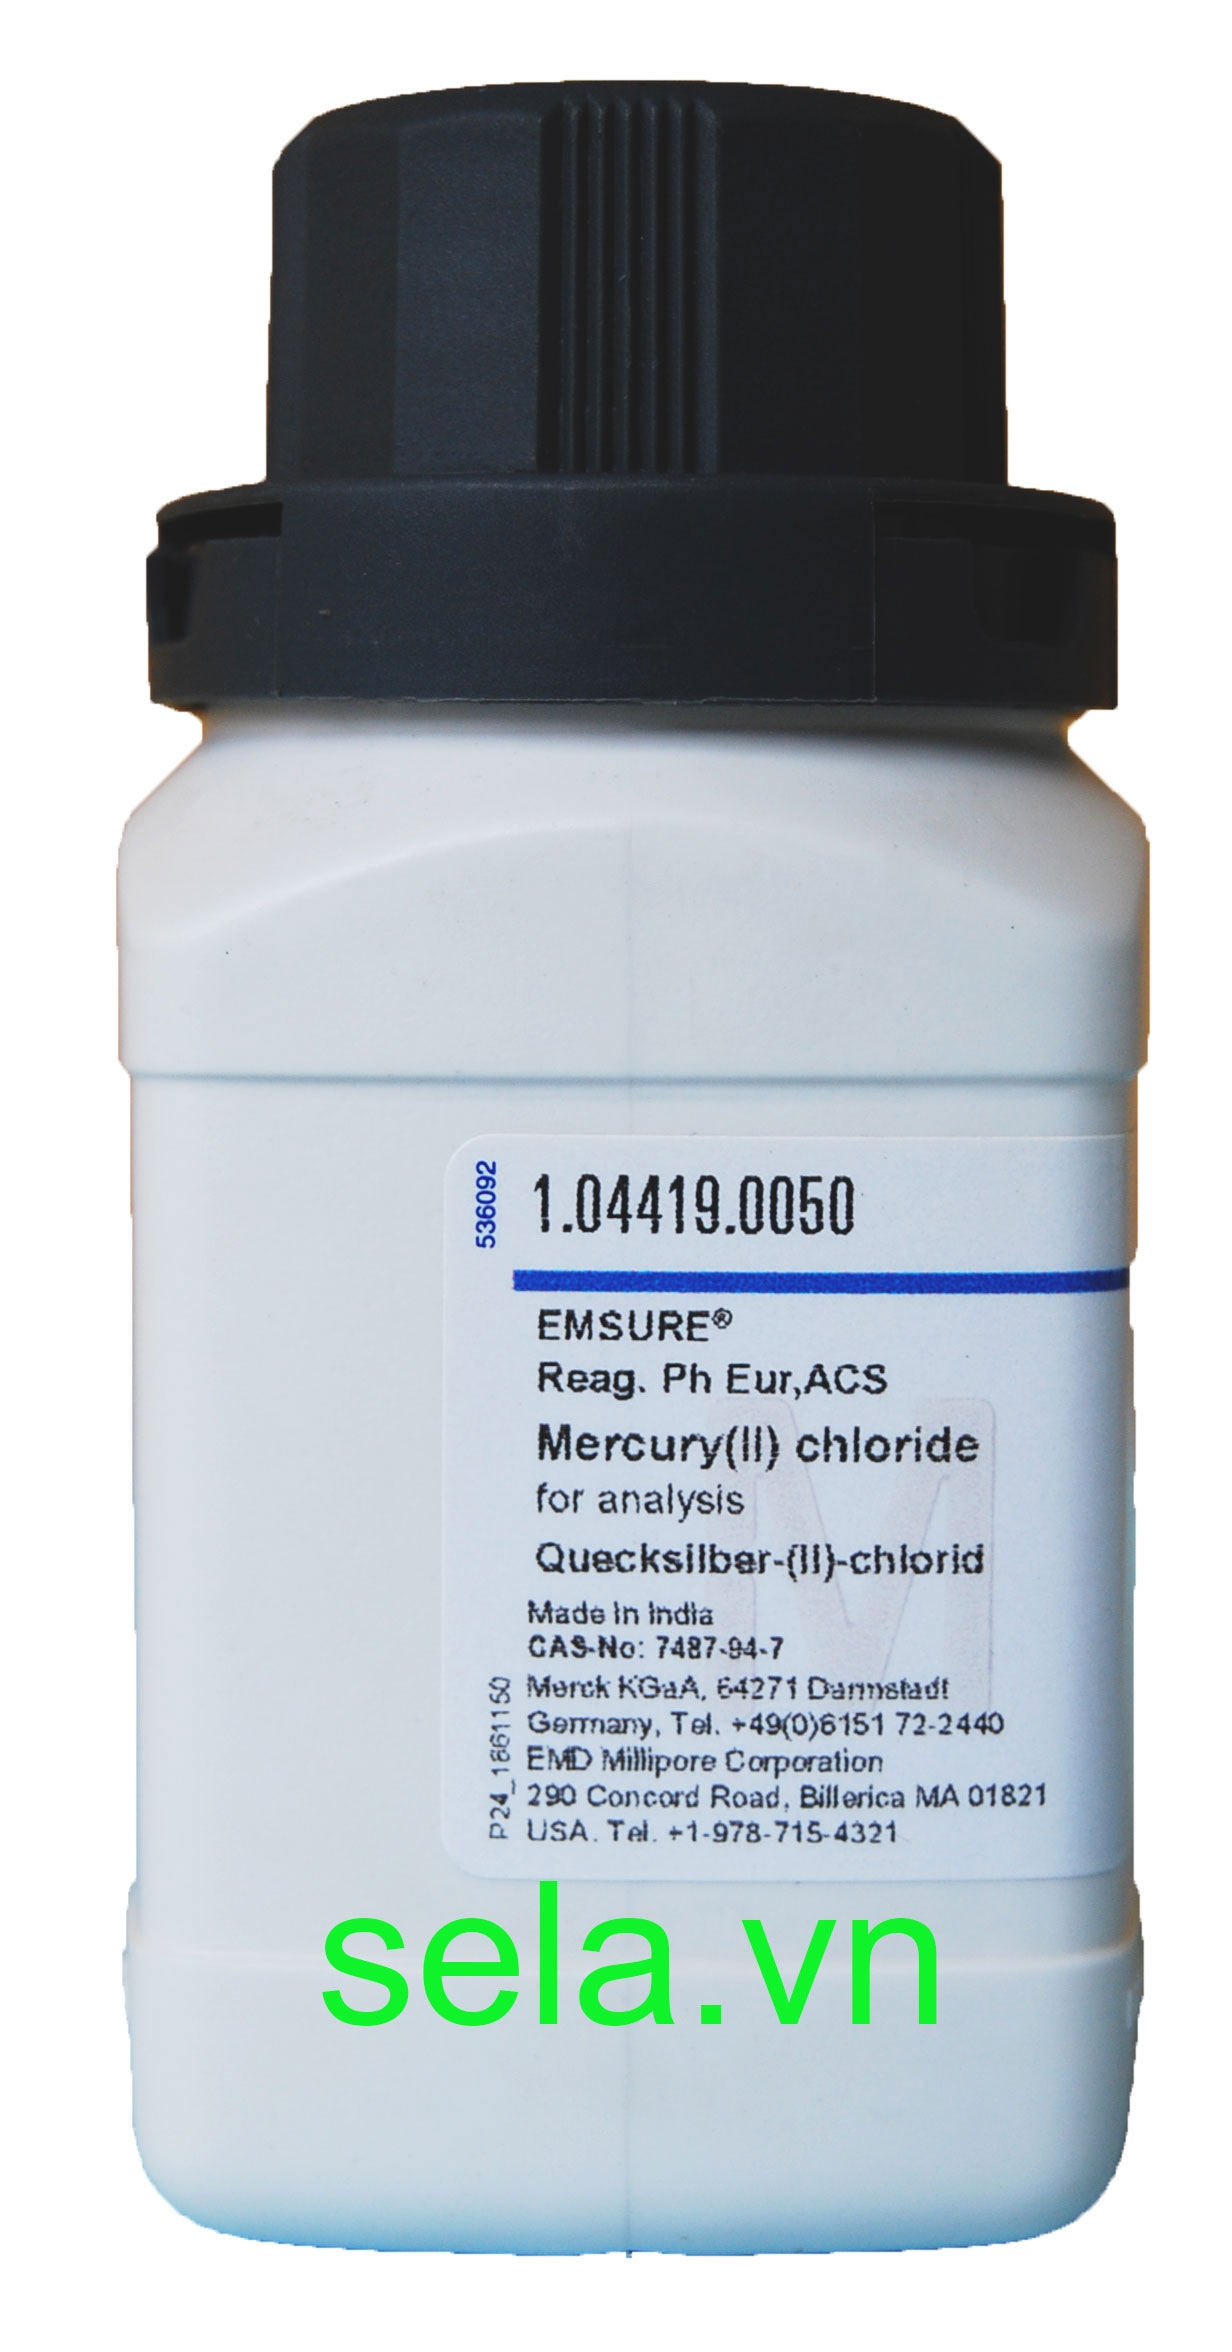 Mercury(II) chloride for analysis EMSURE® Reag. Ph Eur,ACS